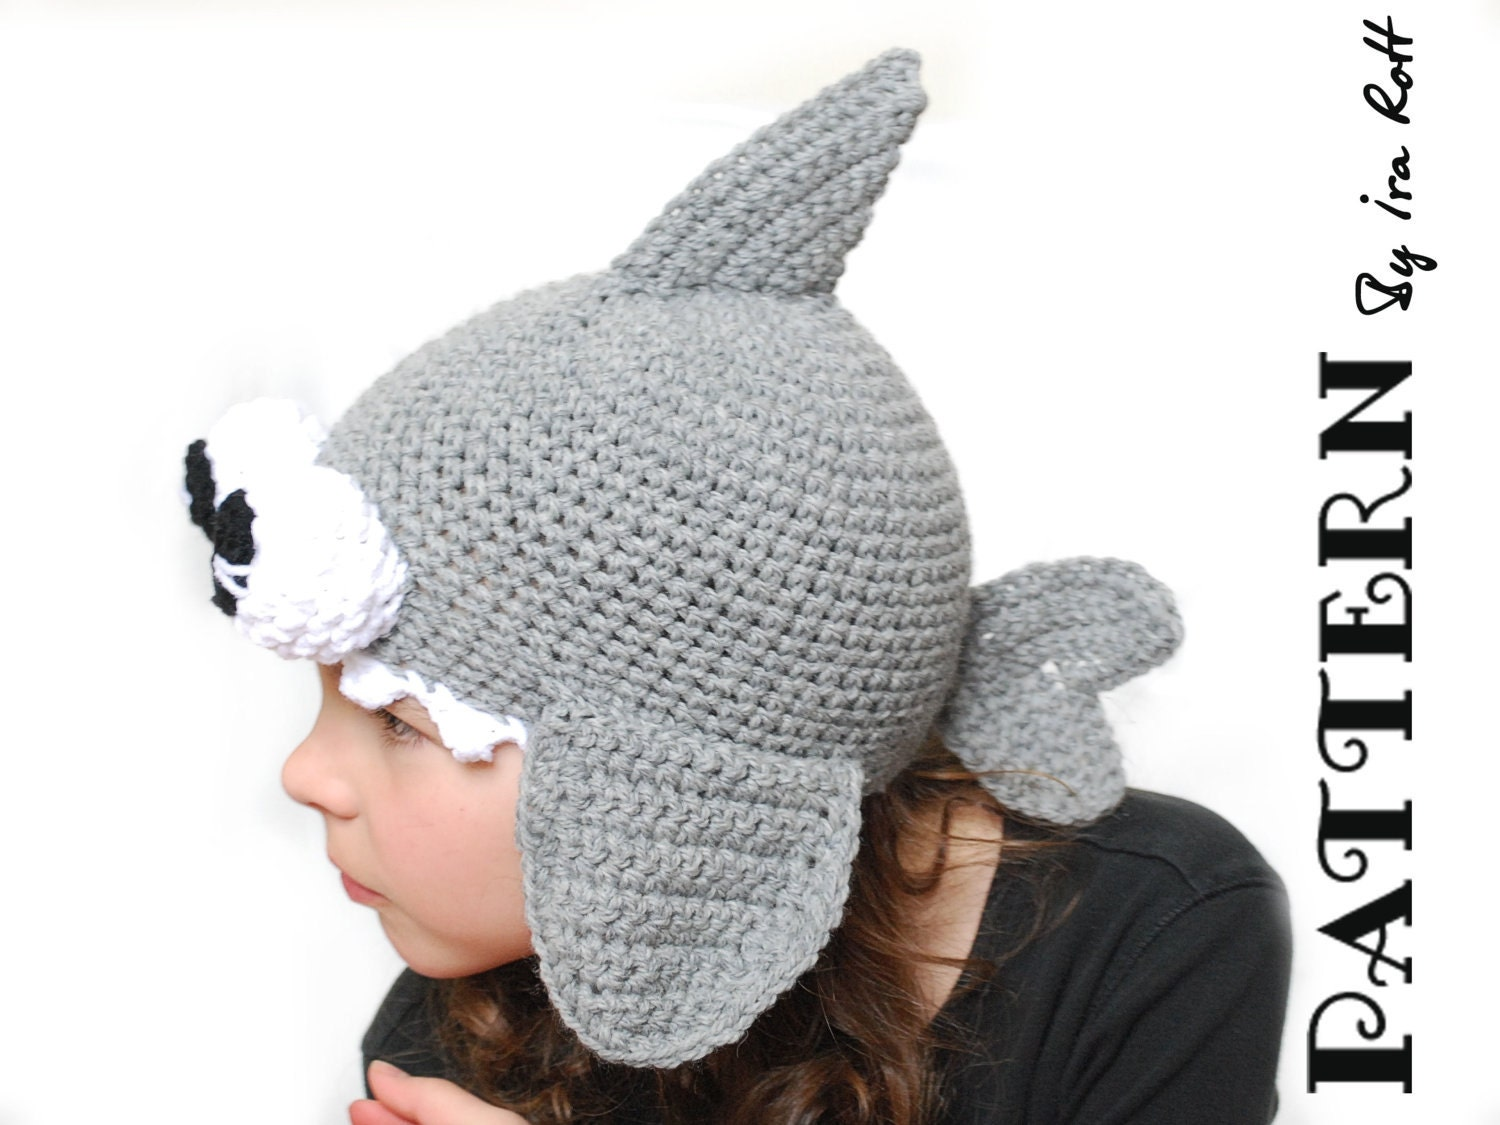 Crochet Pattern For A Shark Hat : CROCHET PATTERN Spike the Shark Hat with Googly by ...